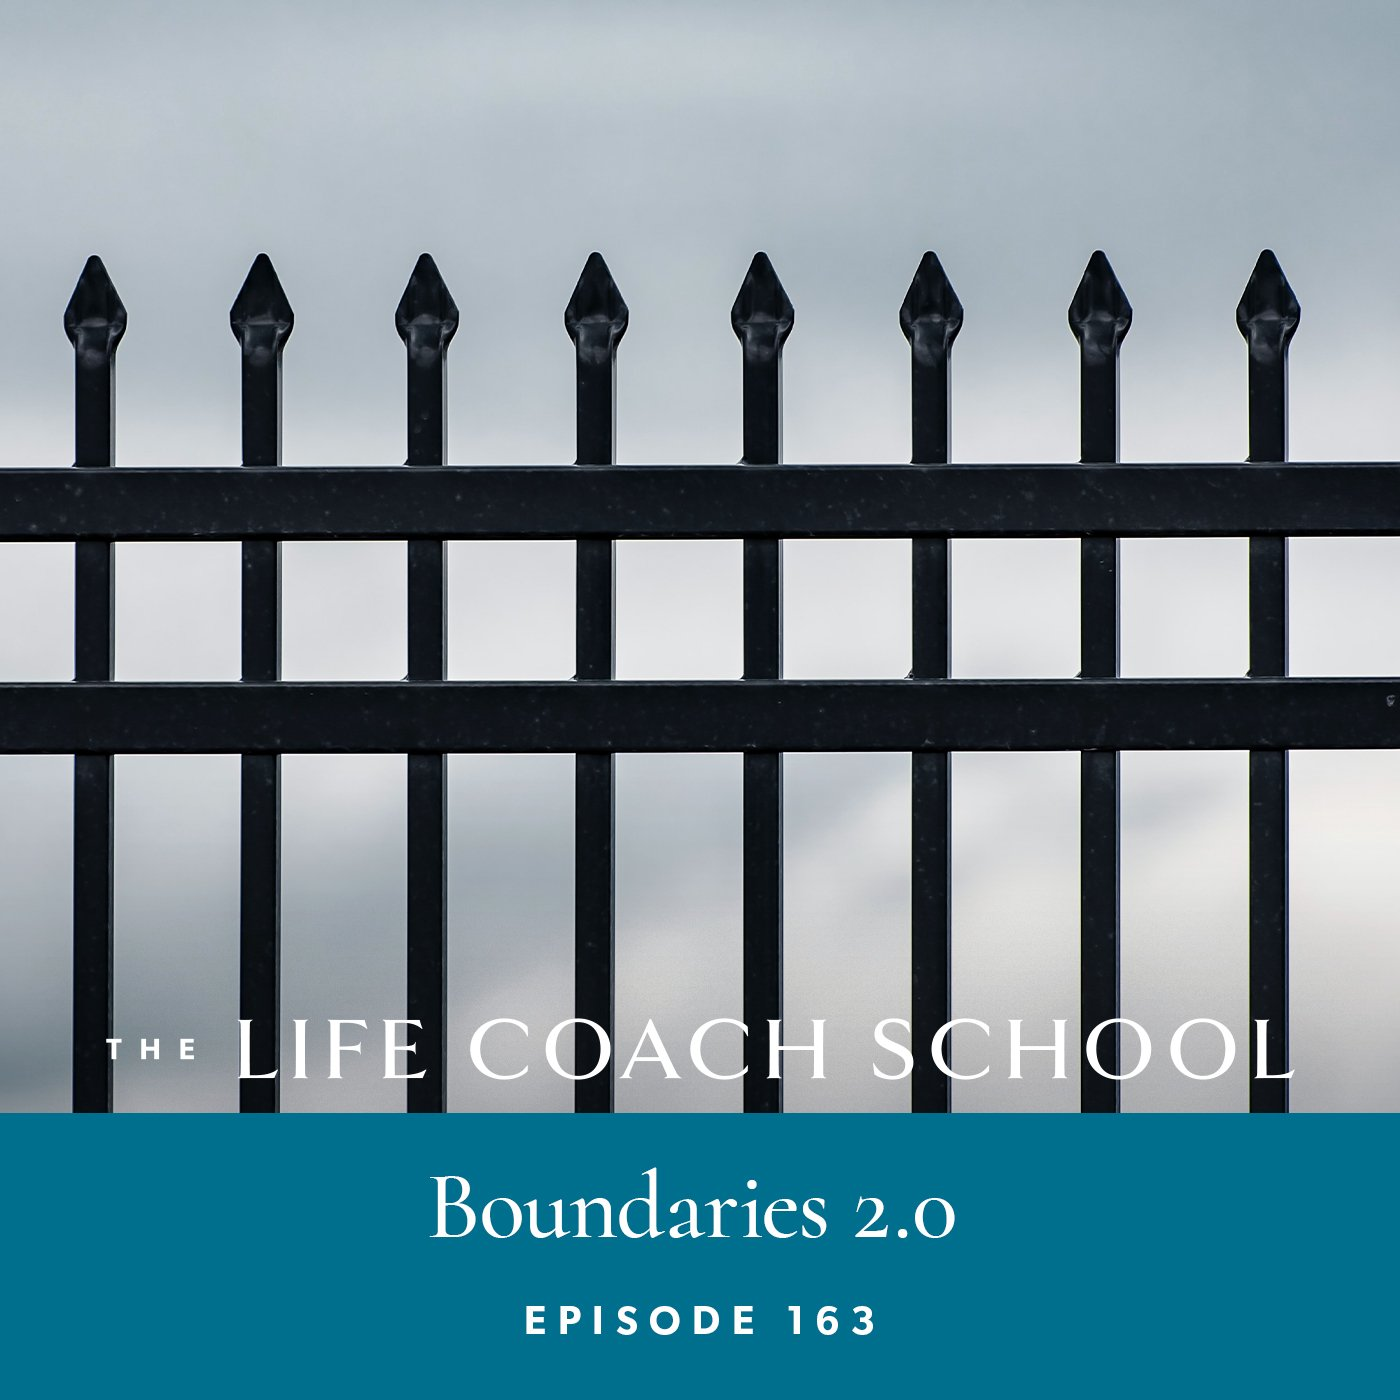 The Life Coach School Podcast with Brooke Castillo | Episode 163 | Boundaries 2.0